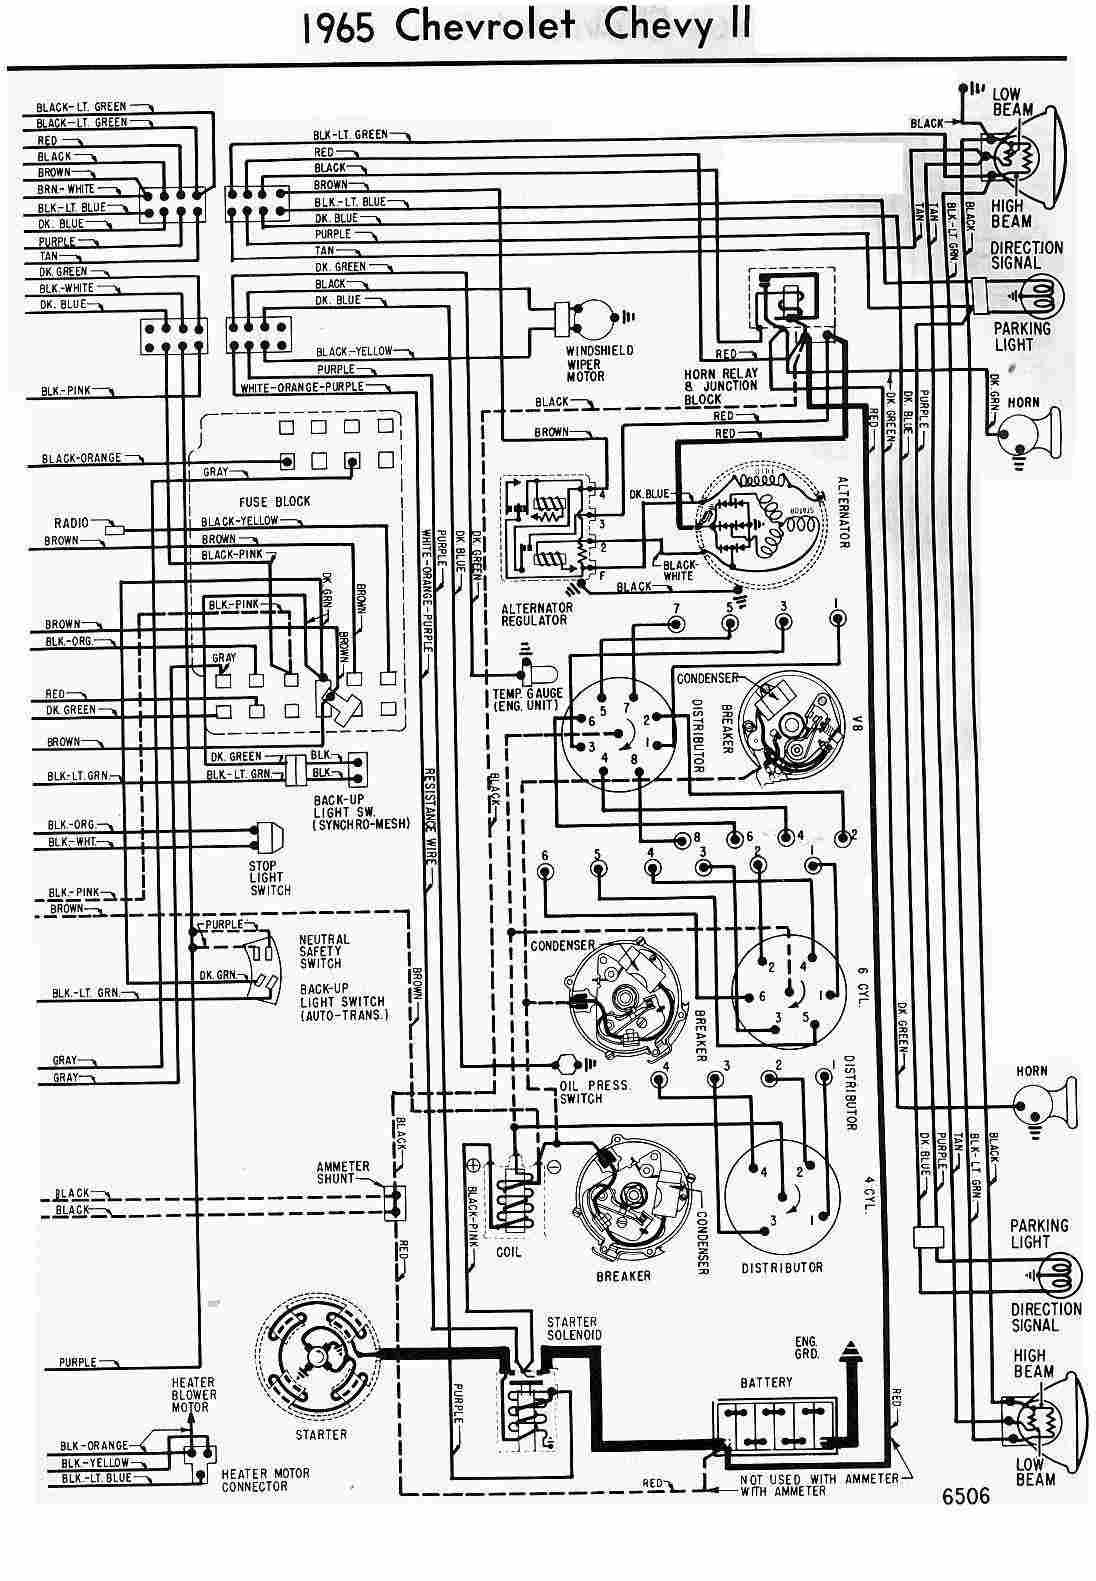 wiring diagram diagram of 1965 chevrolet chevy ii?t=1508393184 chevrolet car manuals, wiring diagrams pdf & fault codes 1966 corvette wiring diagram pdf at mifinder.co